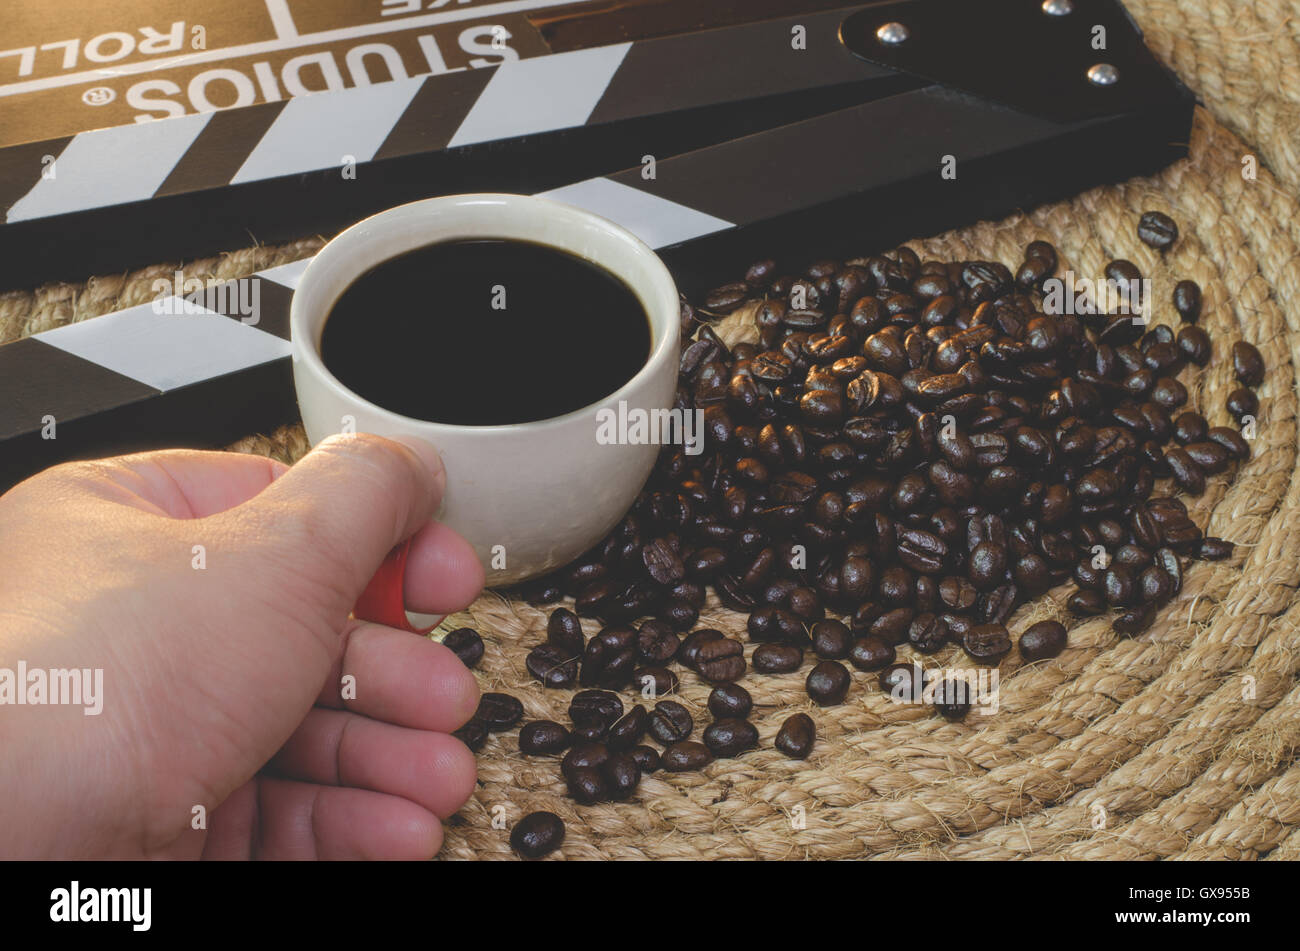 Sla Stock Photos Images Alamy Luwak White Koffie Original 20 Pcs Hand Catch Cup Of Hot Coffee With Beans Slate On A Jute Rope